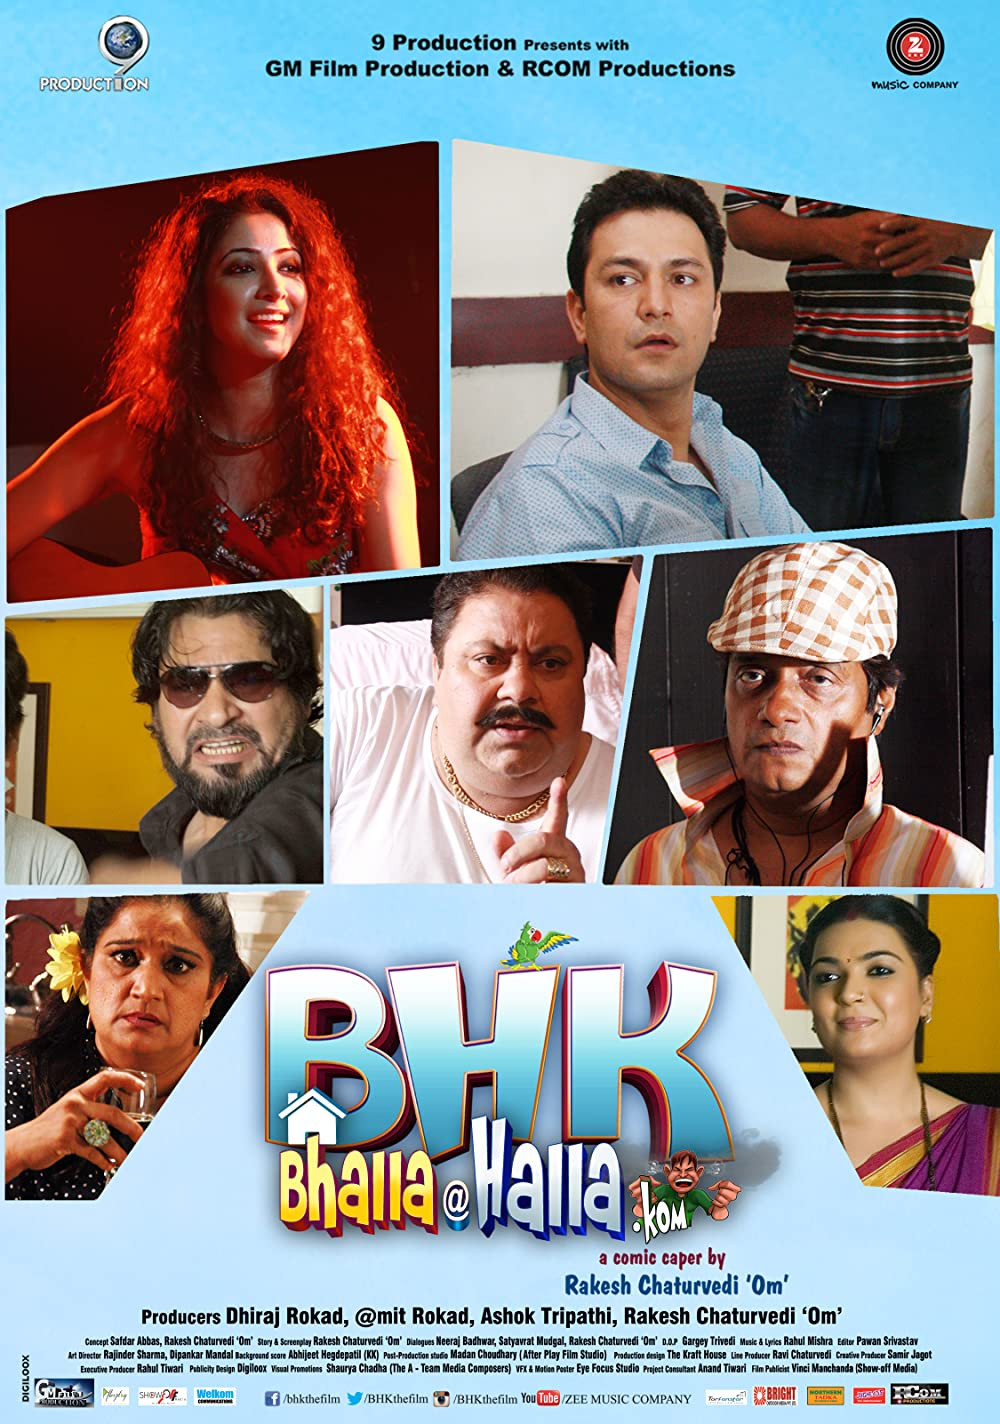 BHK Bhalla@Halla.Kom 2016 Hindi 1080p HDRip ESubs 1.7GB x264 AAC